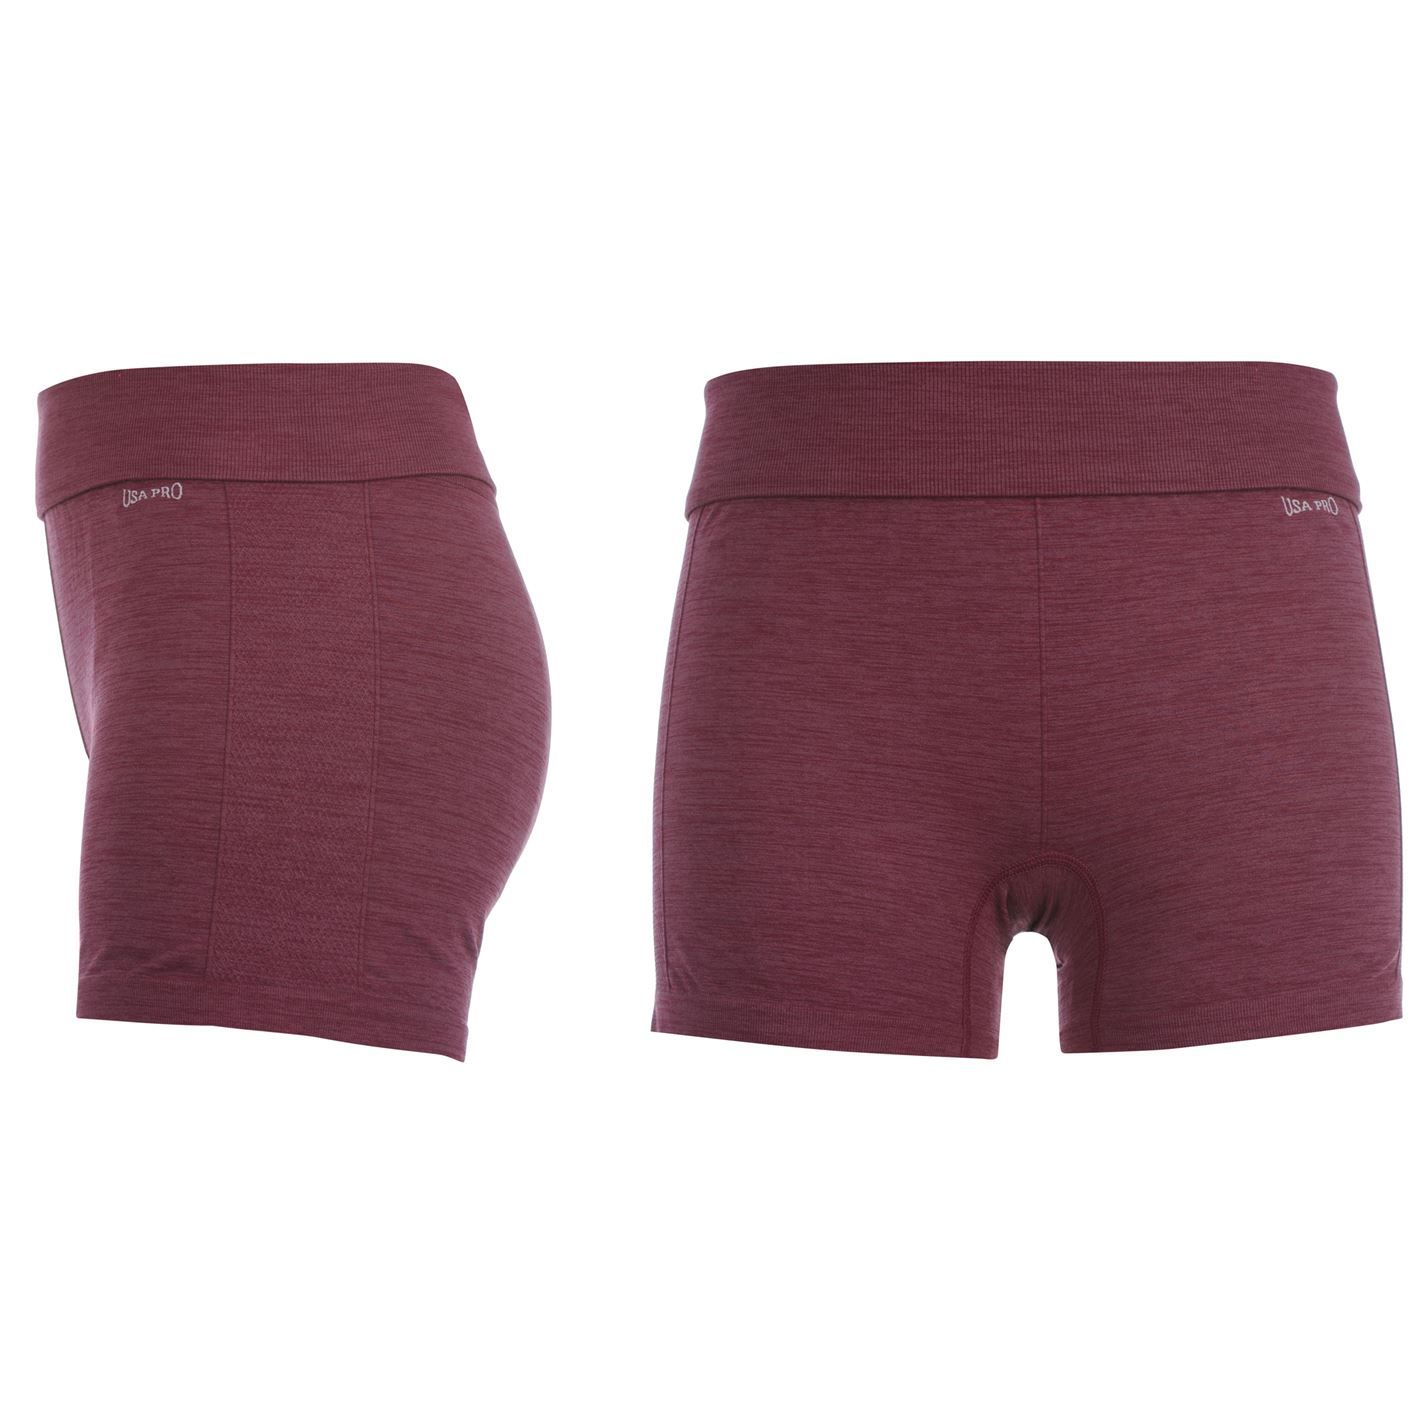 USA Pro Hot Yoga Ladies Shorts    Now £9  fitness  96ed7a7a4d0b